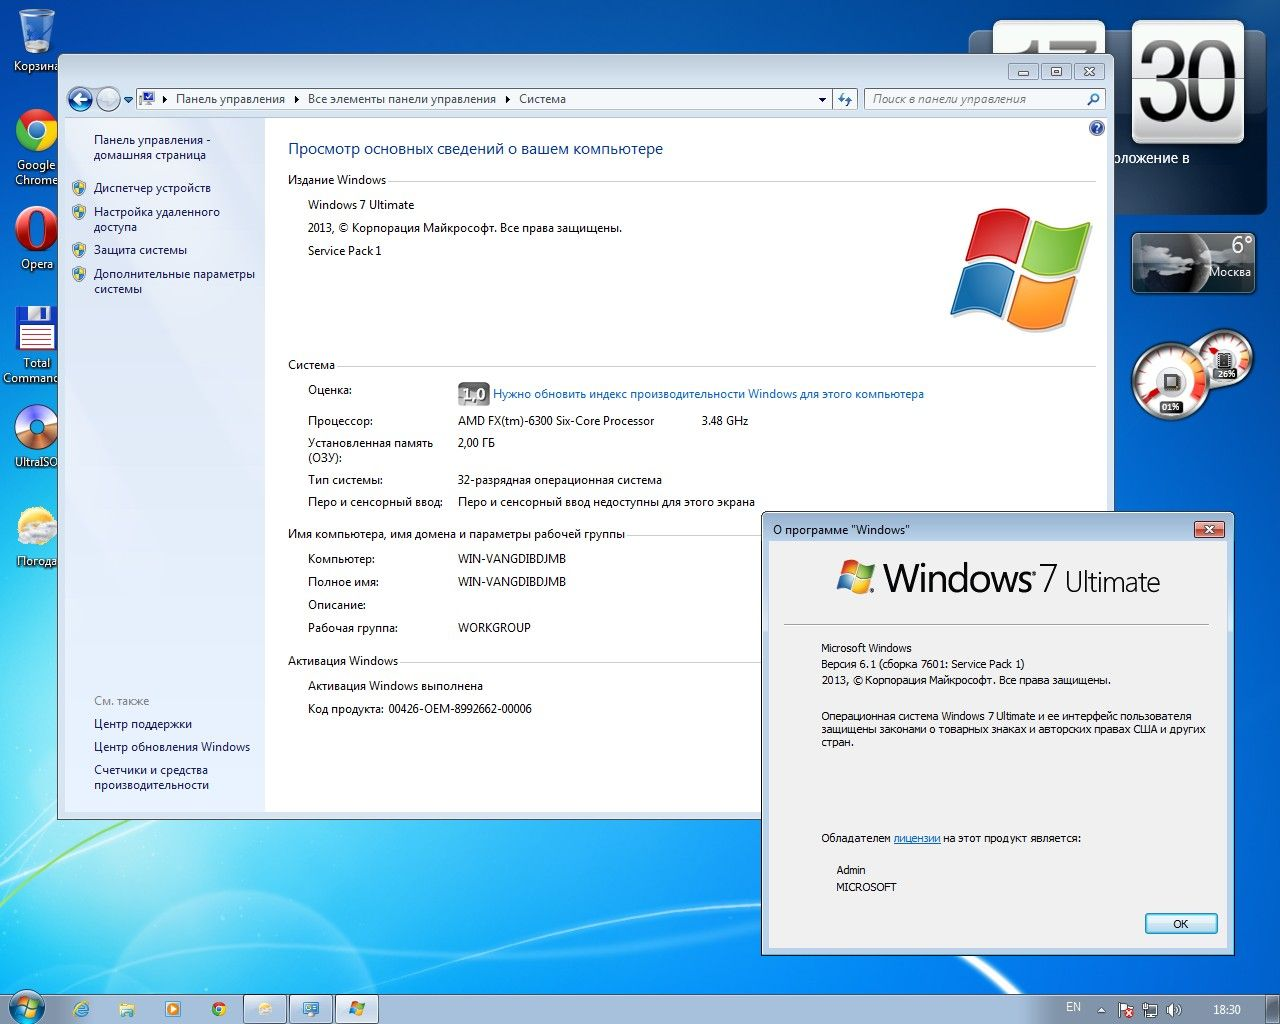 Windows 7 Ultimate SP1 x86 by Loginvovchyk 10.2014 RUS/ENG